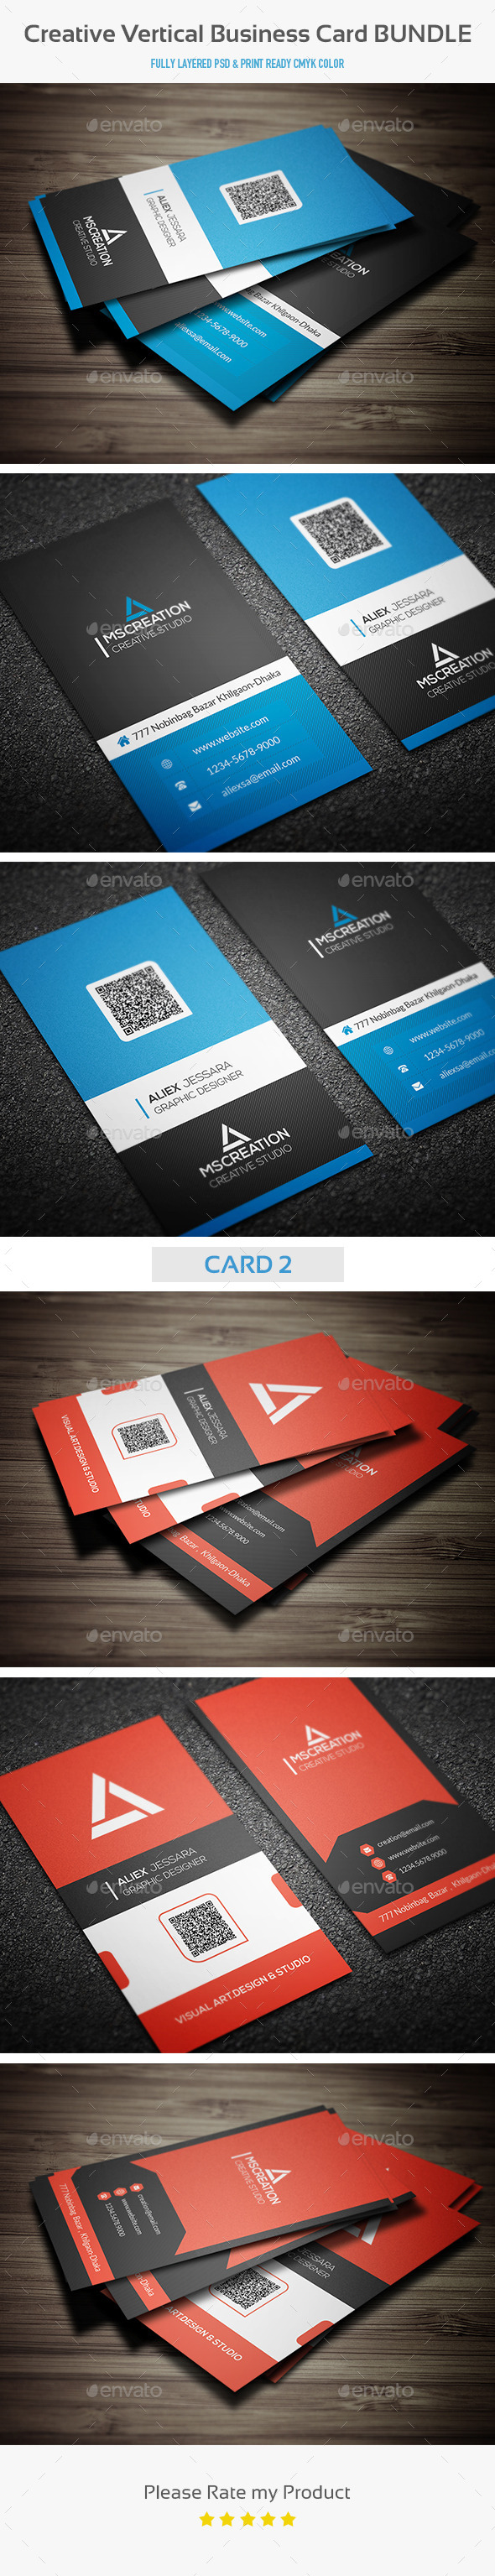 GraphicRiver Creative Vertical Business Card Bundle 10485683